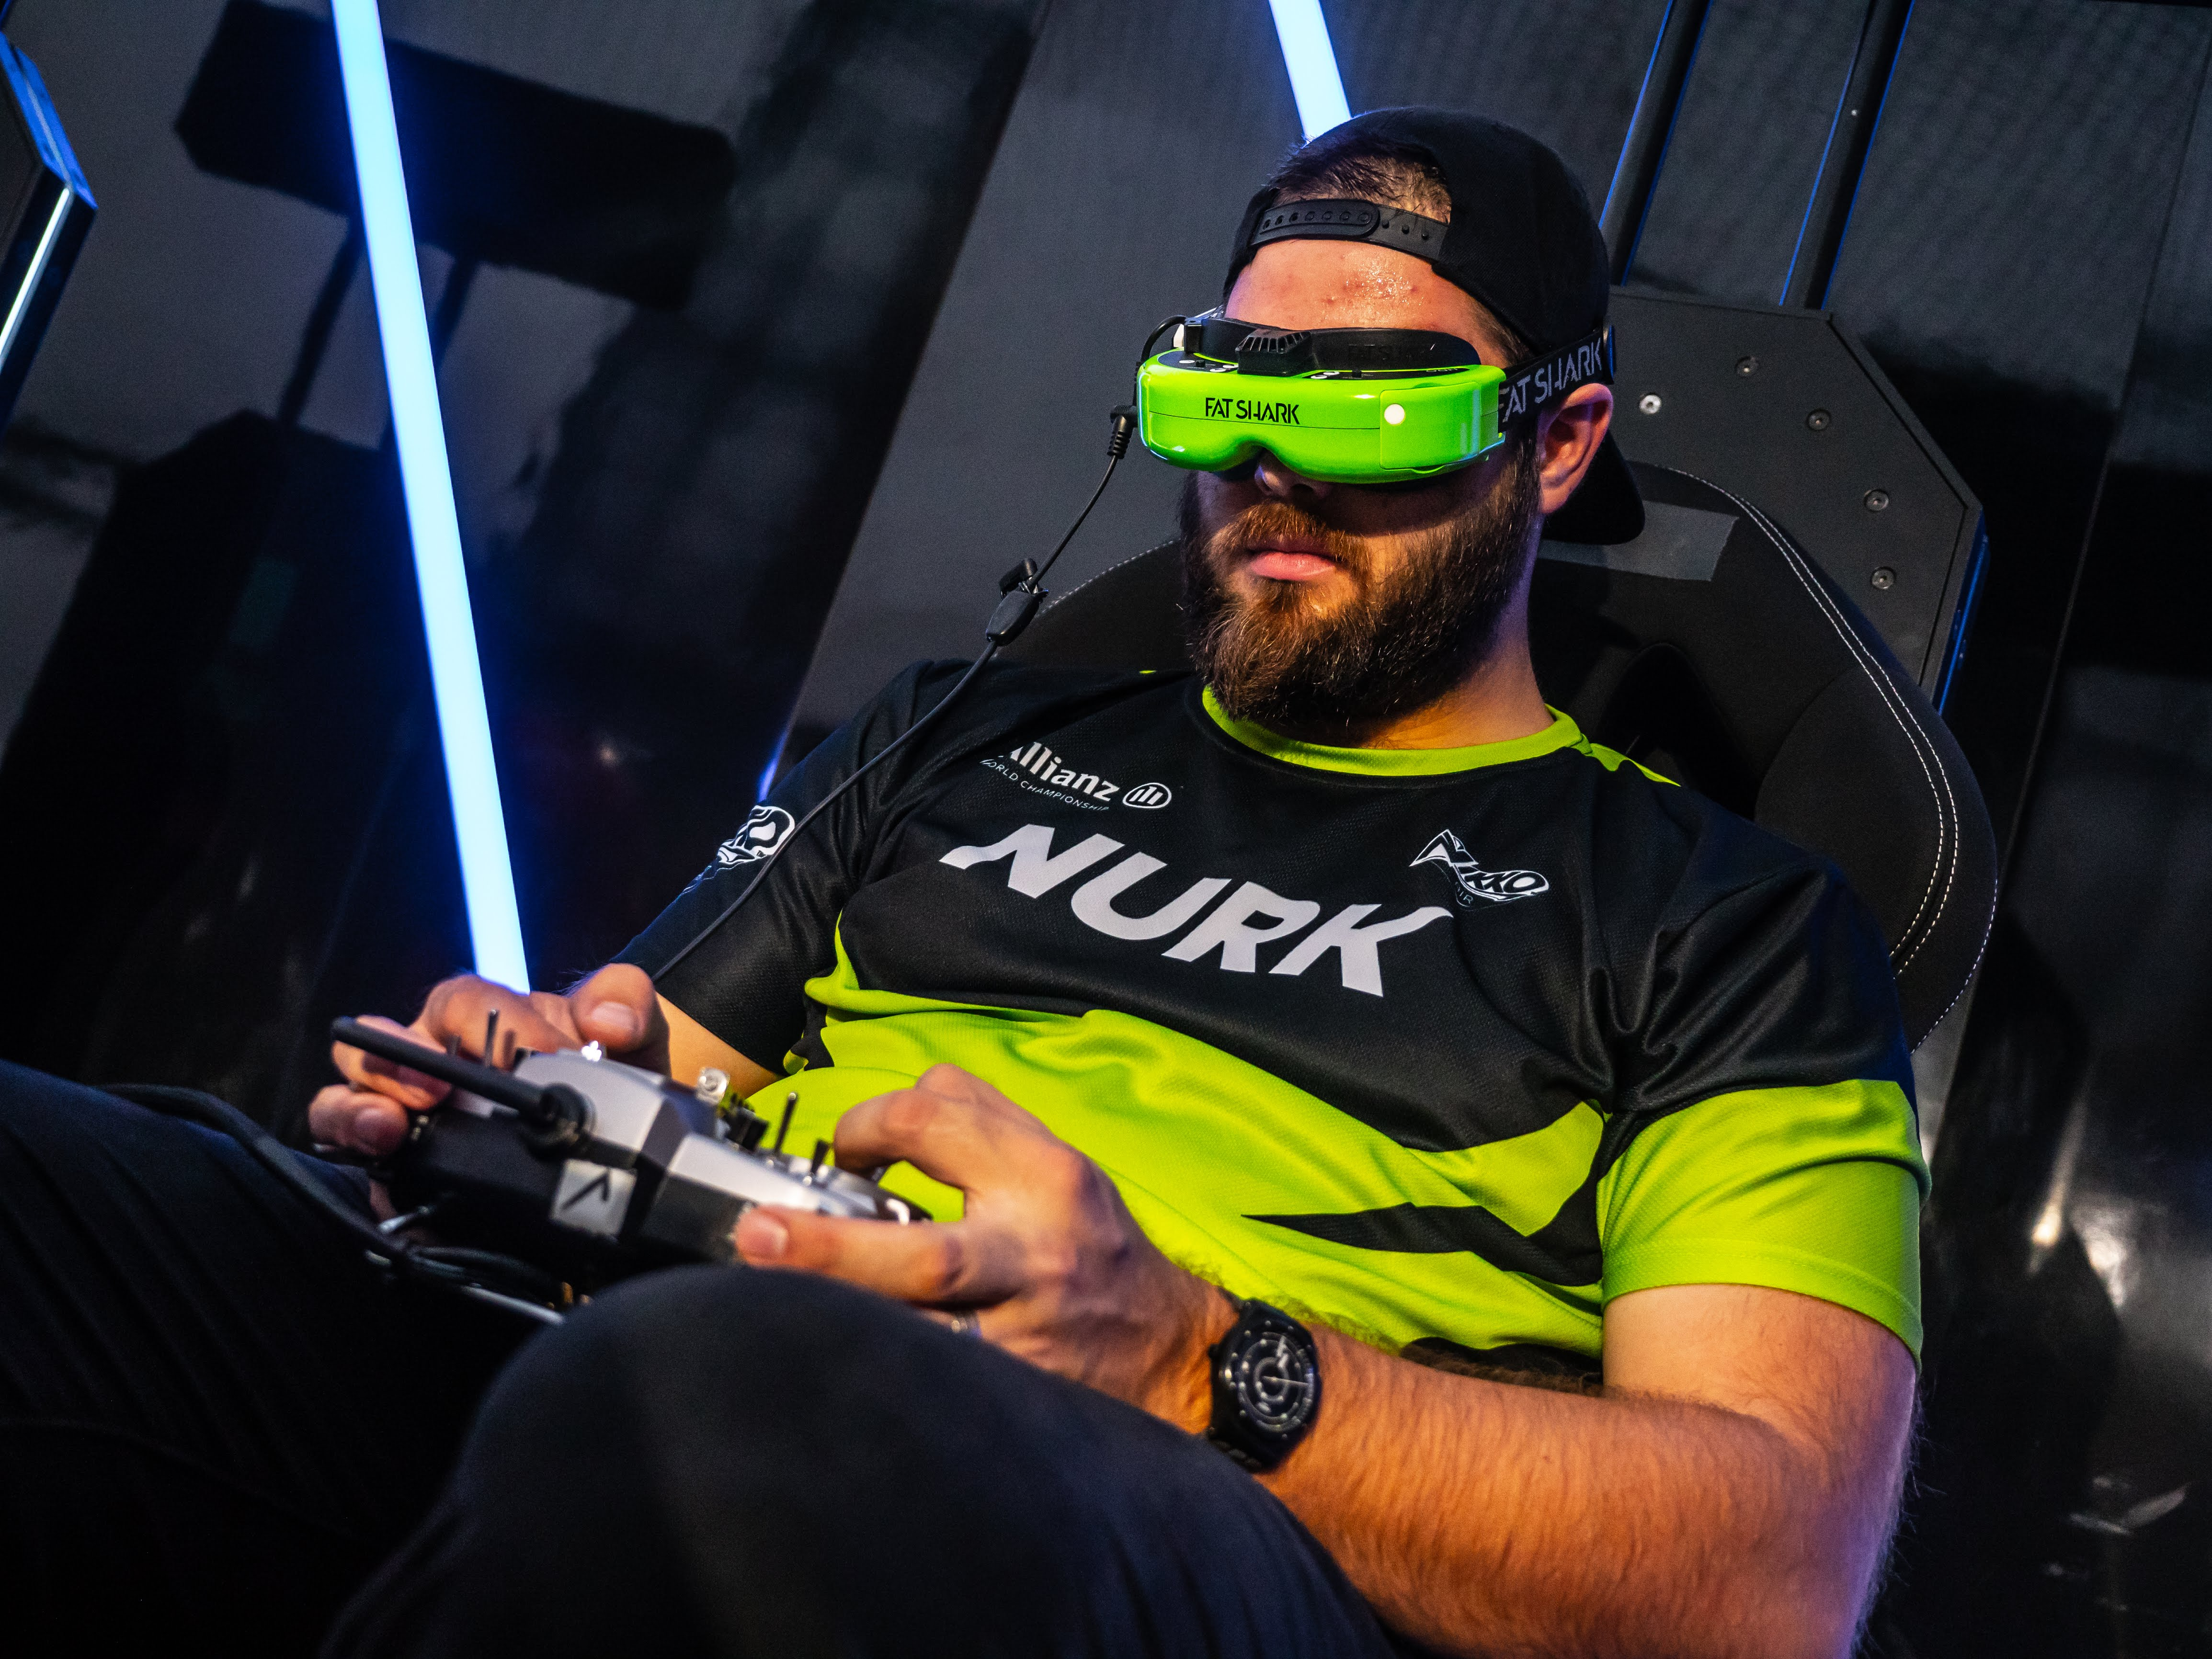 Allianz DRL Champion Nurk competing in a DRL event